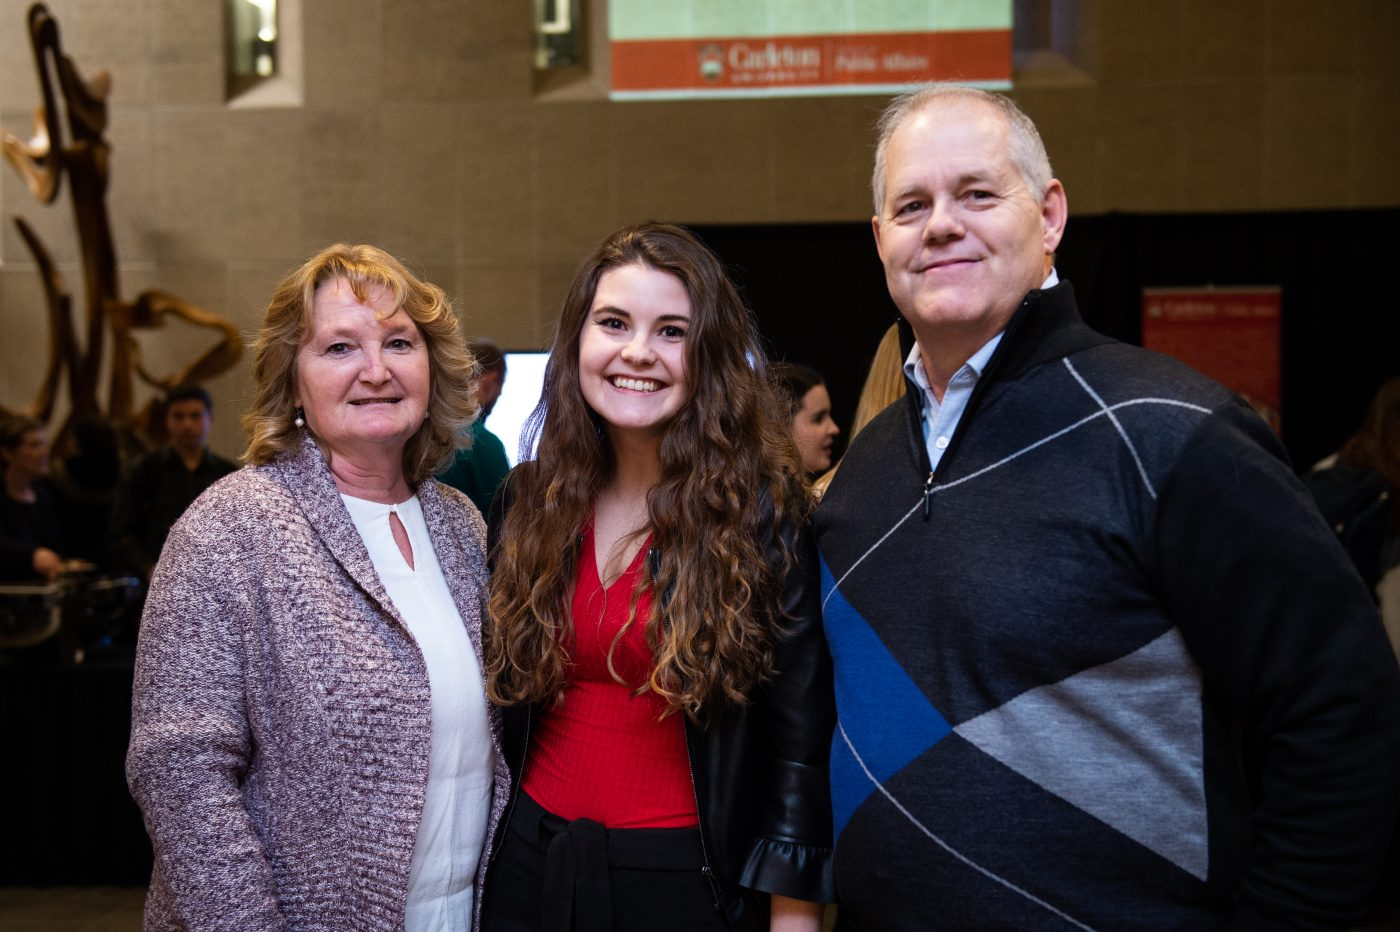 Katelyn Kornelsen poses with her parents.